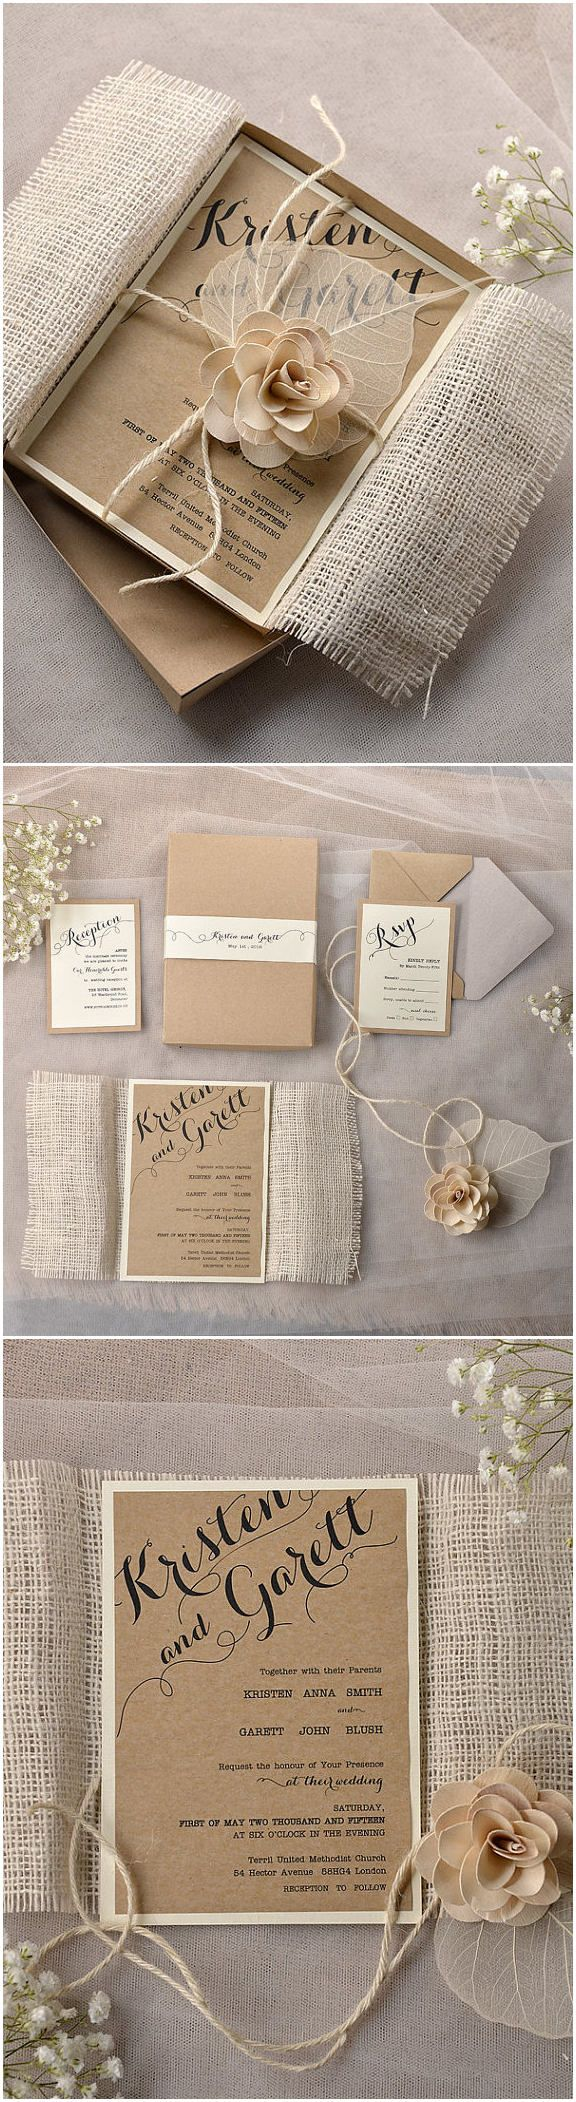 Top 10 Rustic Wedding Invitations To Wow Your Guests Elegantweddinginvites Com Blog Wedding Invitations Rustic Wedding Invitation Kits Lace Wedding Invitations